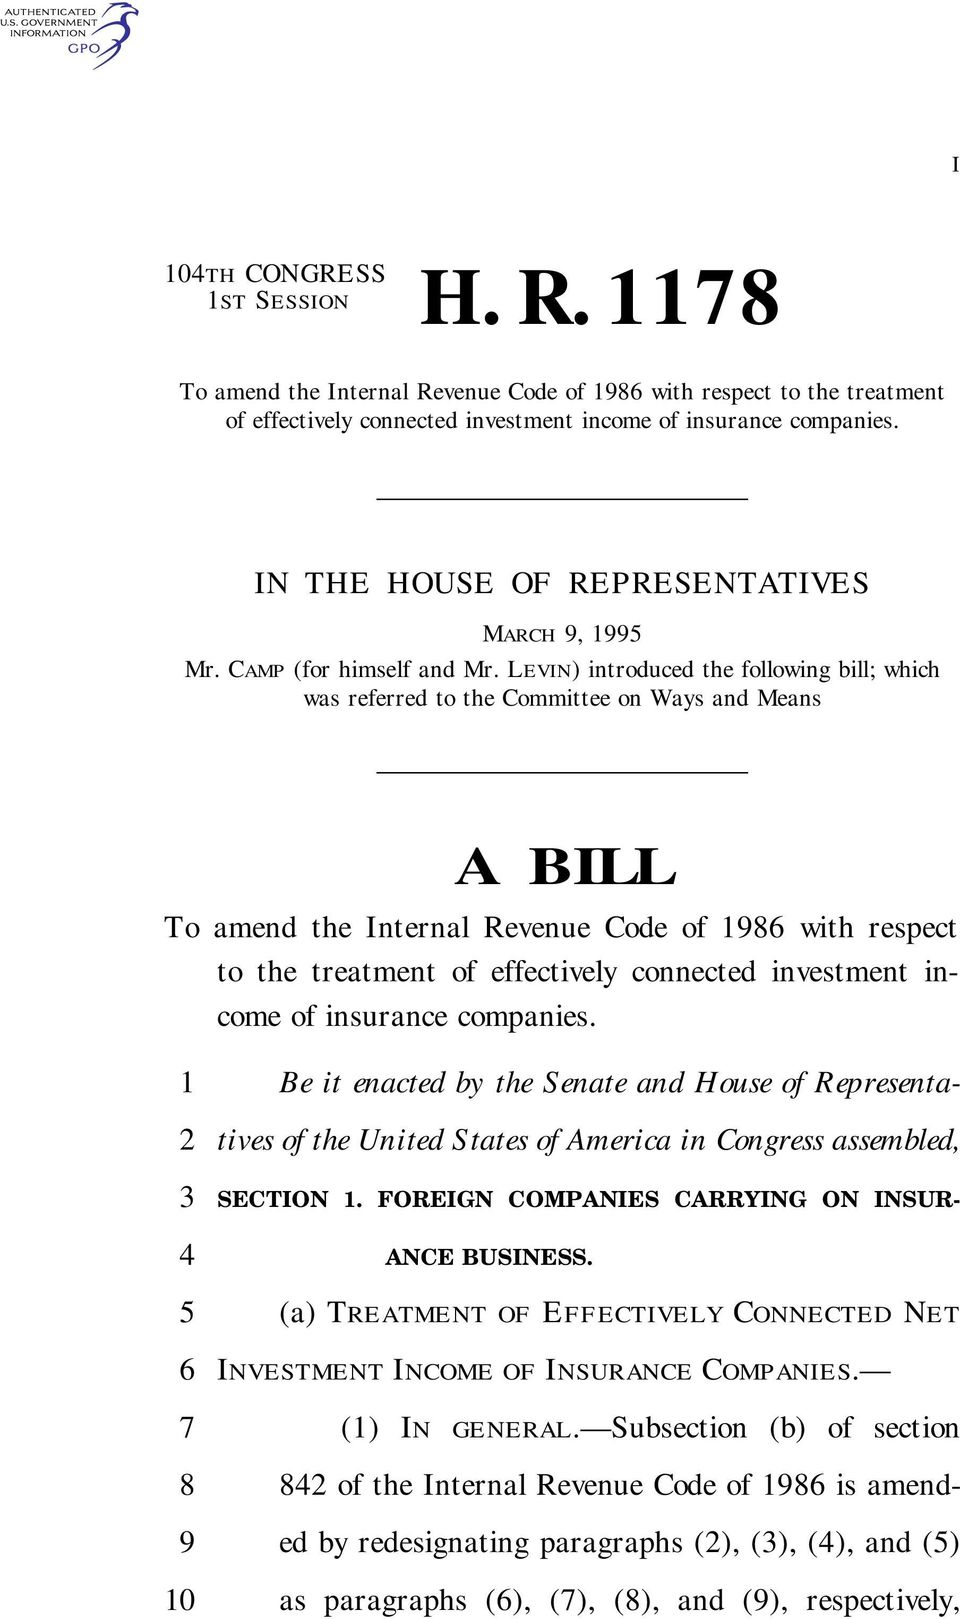 LEVIN) introduced the following bill; which was referred to the Committee on Ways and Means A BILL To amend the Internal Revenue Code of 1 with respect to the treatment of effectively connected